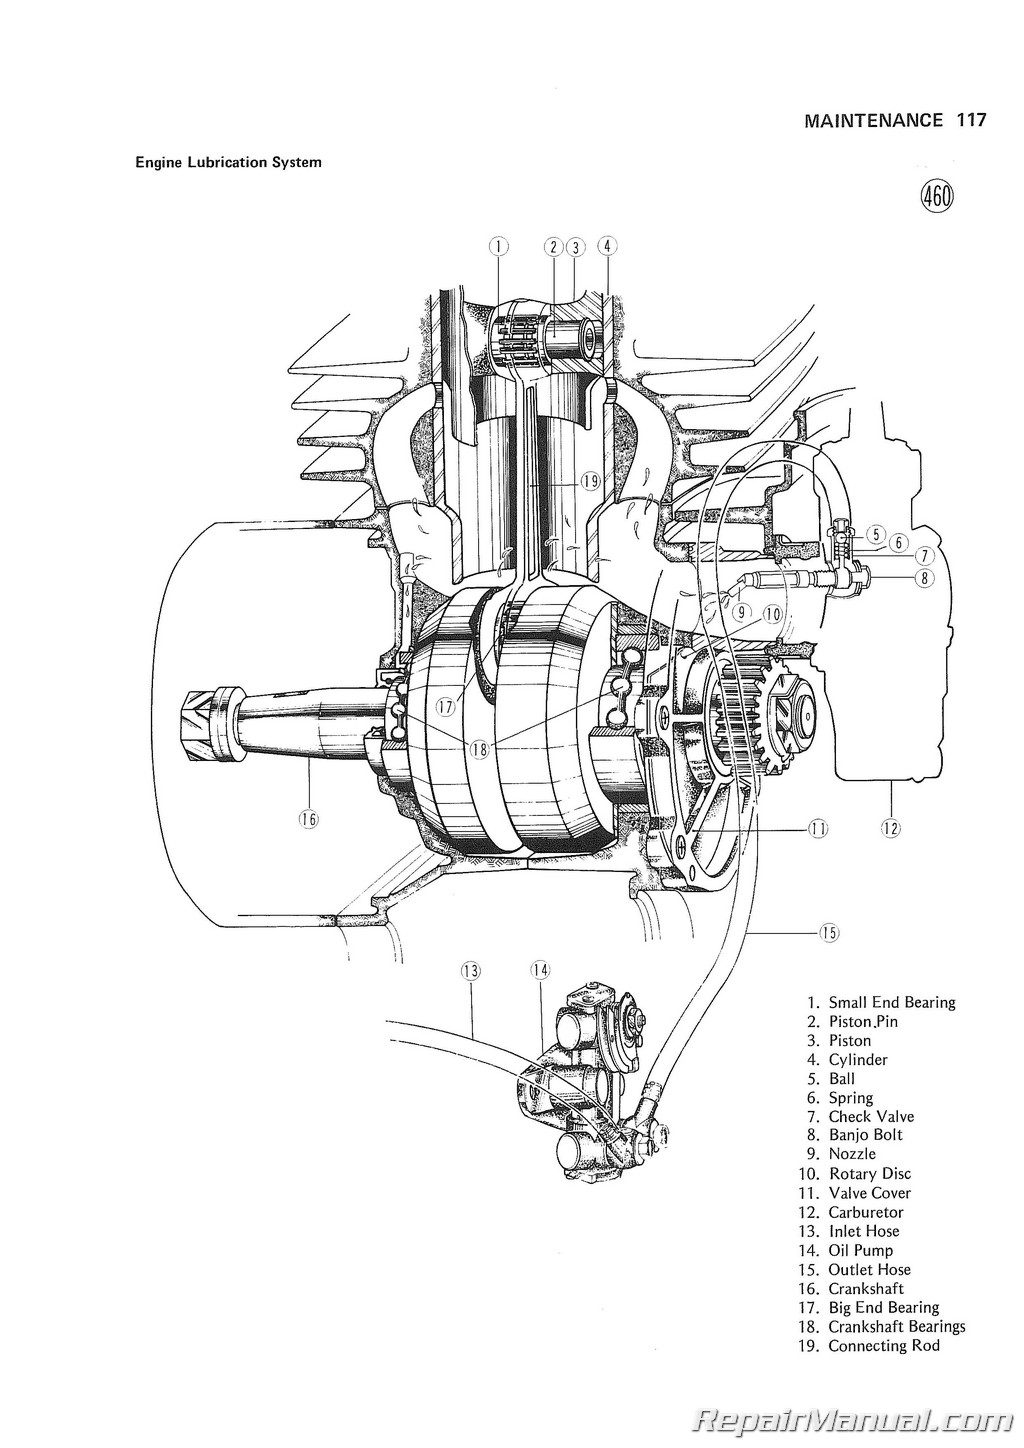 Ke175 Motorcycle Service Manual 1976 Kawasaki Ke175b1 Kz1300 Wiring Diagram  Ke175 Wiring Diagram